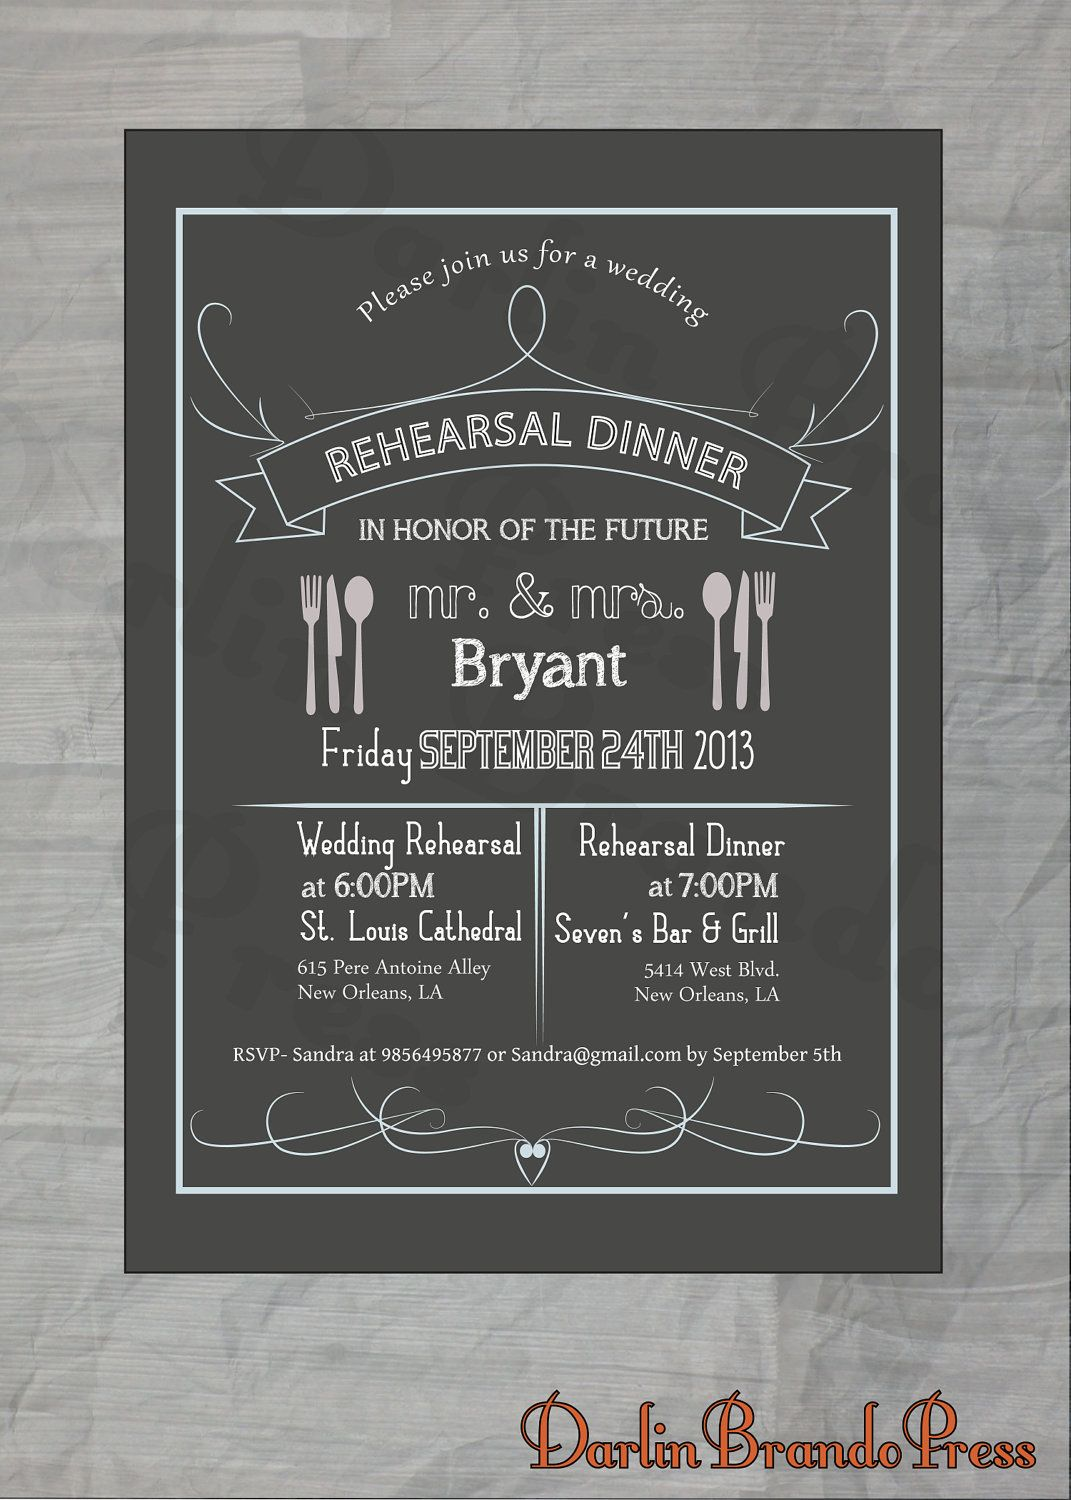 Rehearsal dinner invite wordinglayout wedding ideasplans rehearsal dinner invite wordinglayout stopboris Image collections